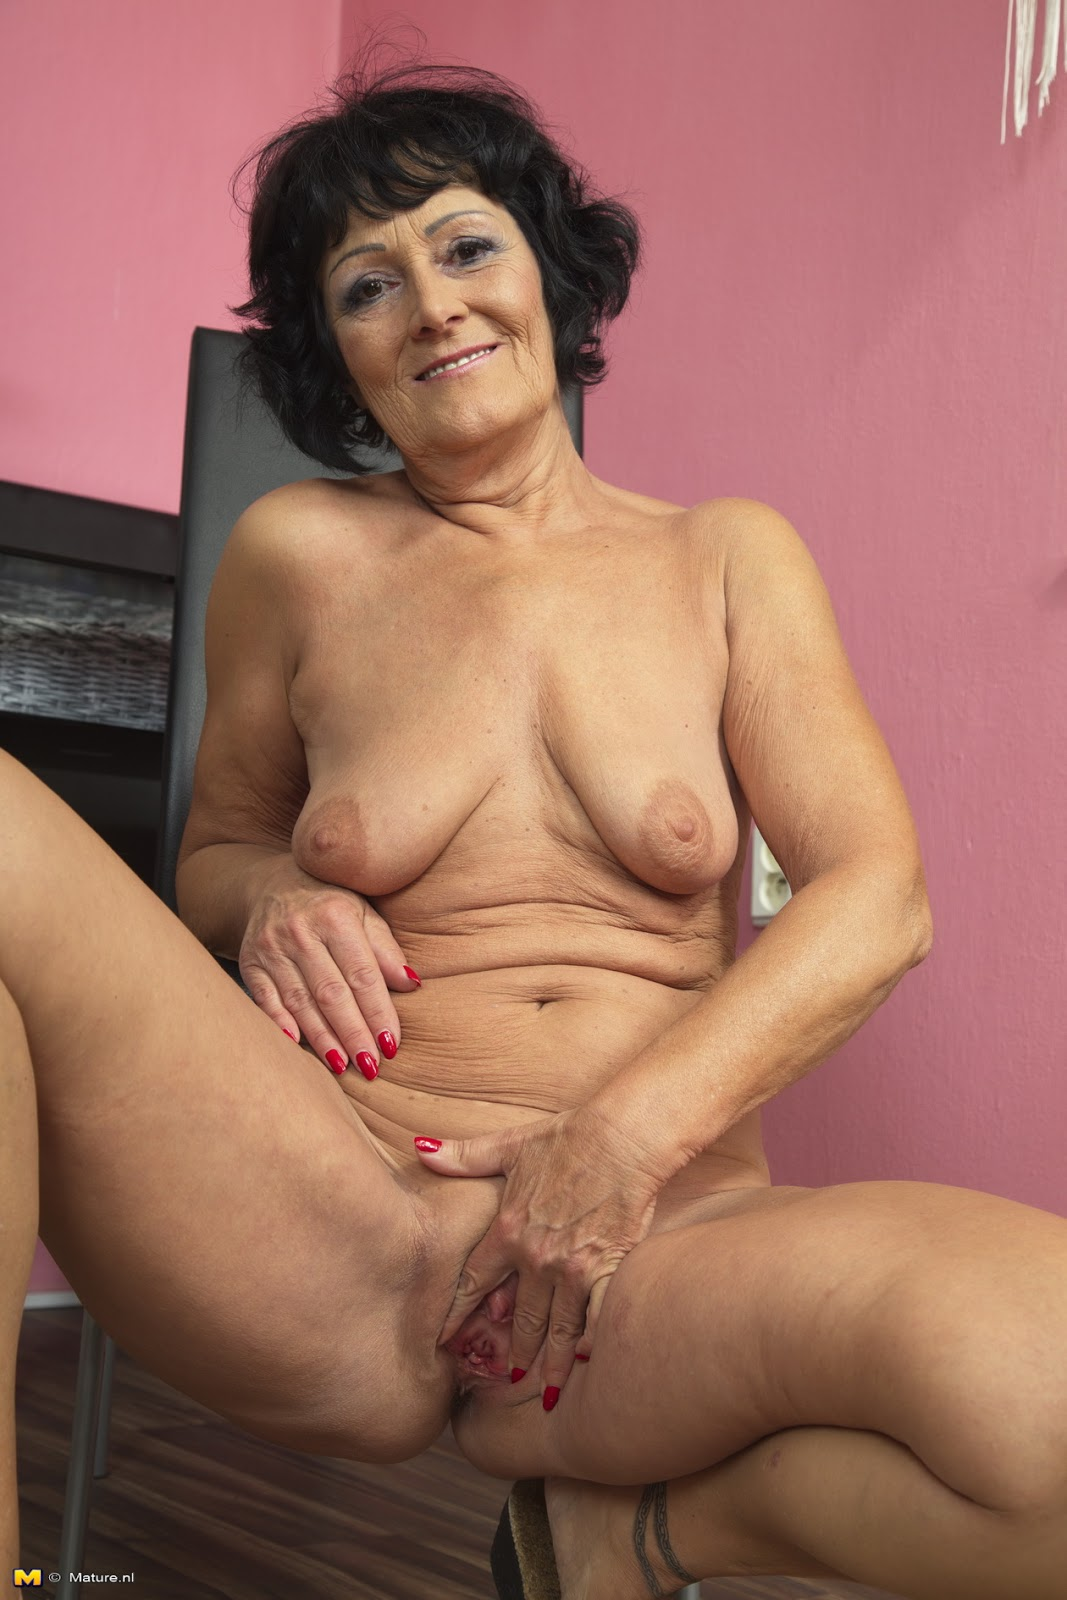 horny old mature women